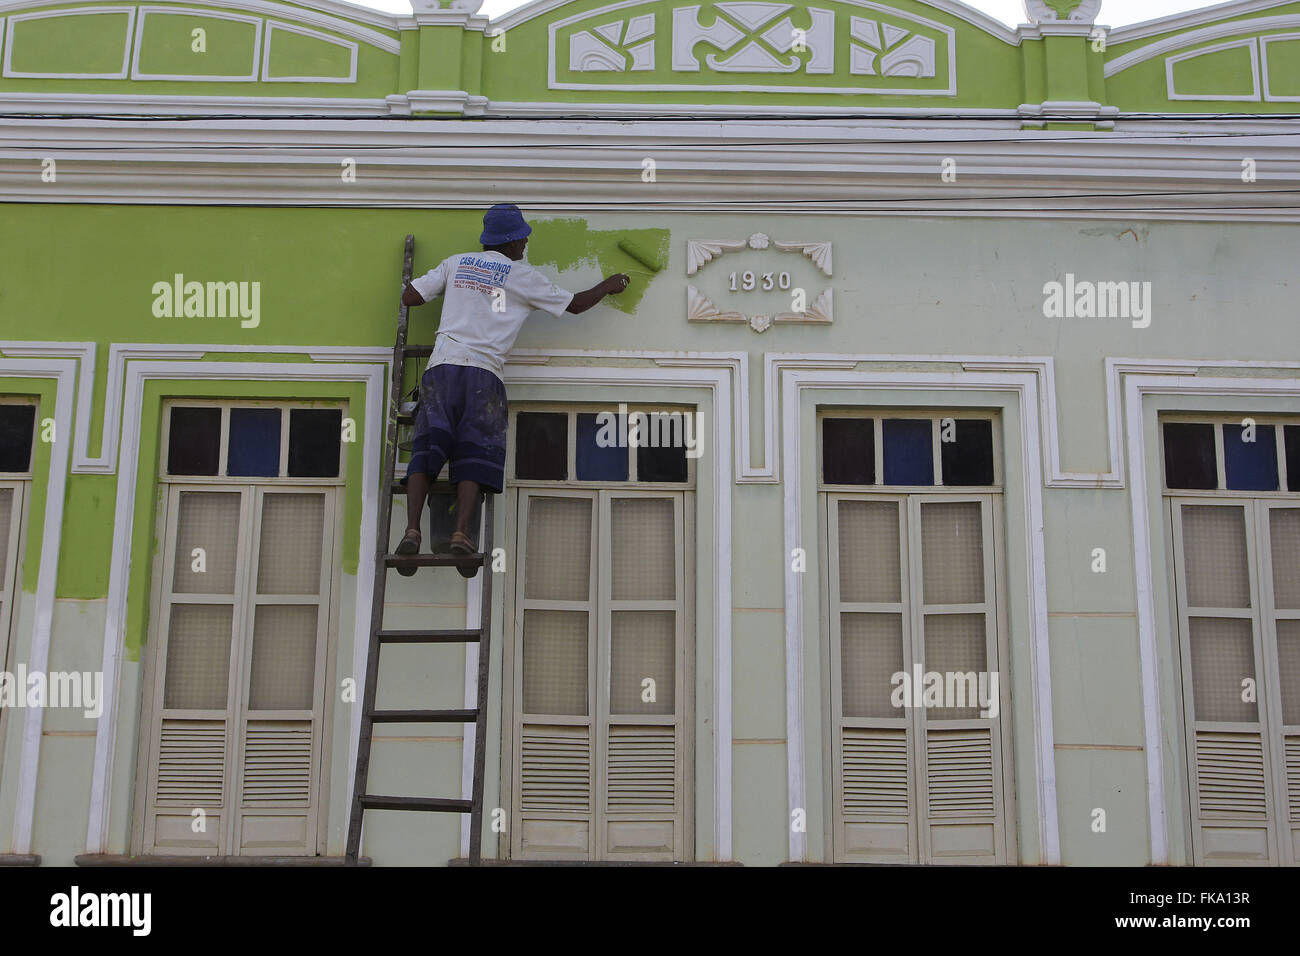 Worker painting facade of colonial townhouse - Stock Image